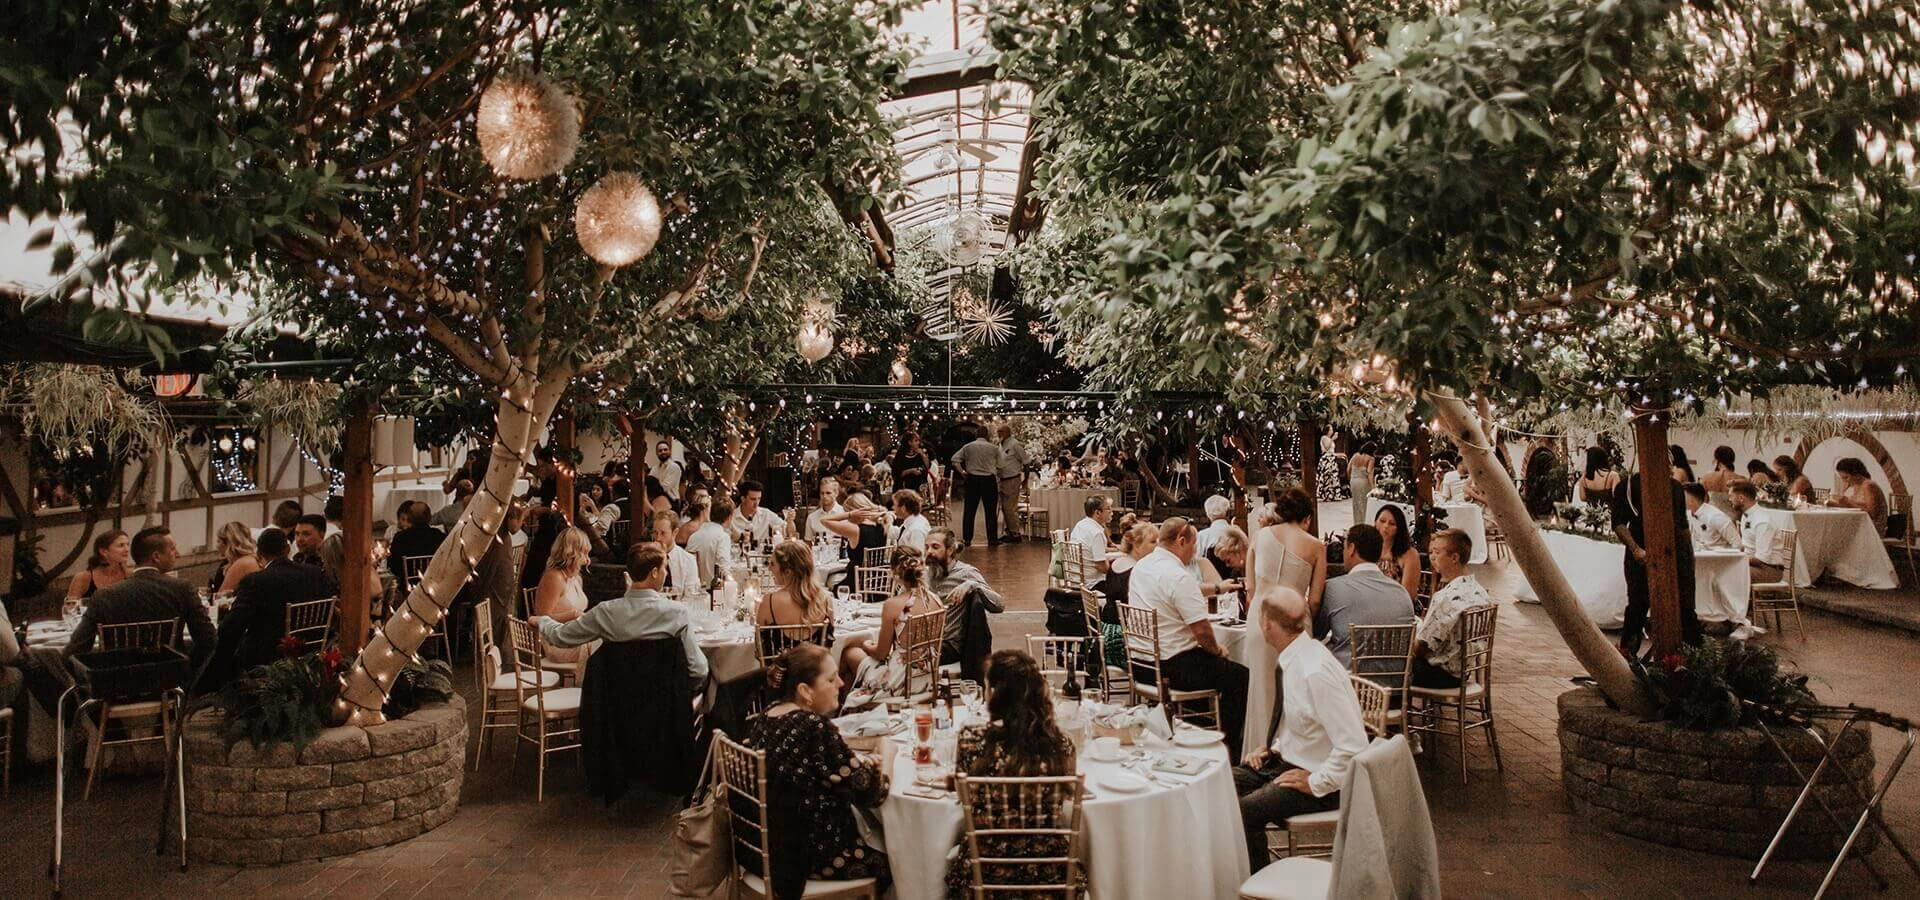 Hero image for 5 Wedding Planning Mistakes that Your Guests Will Hate